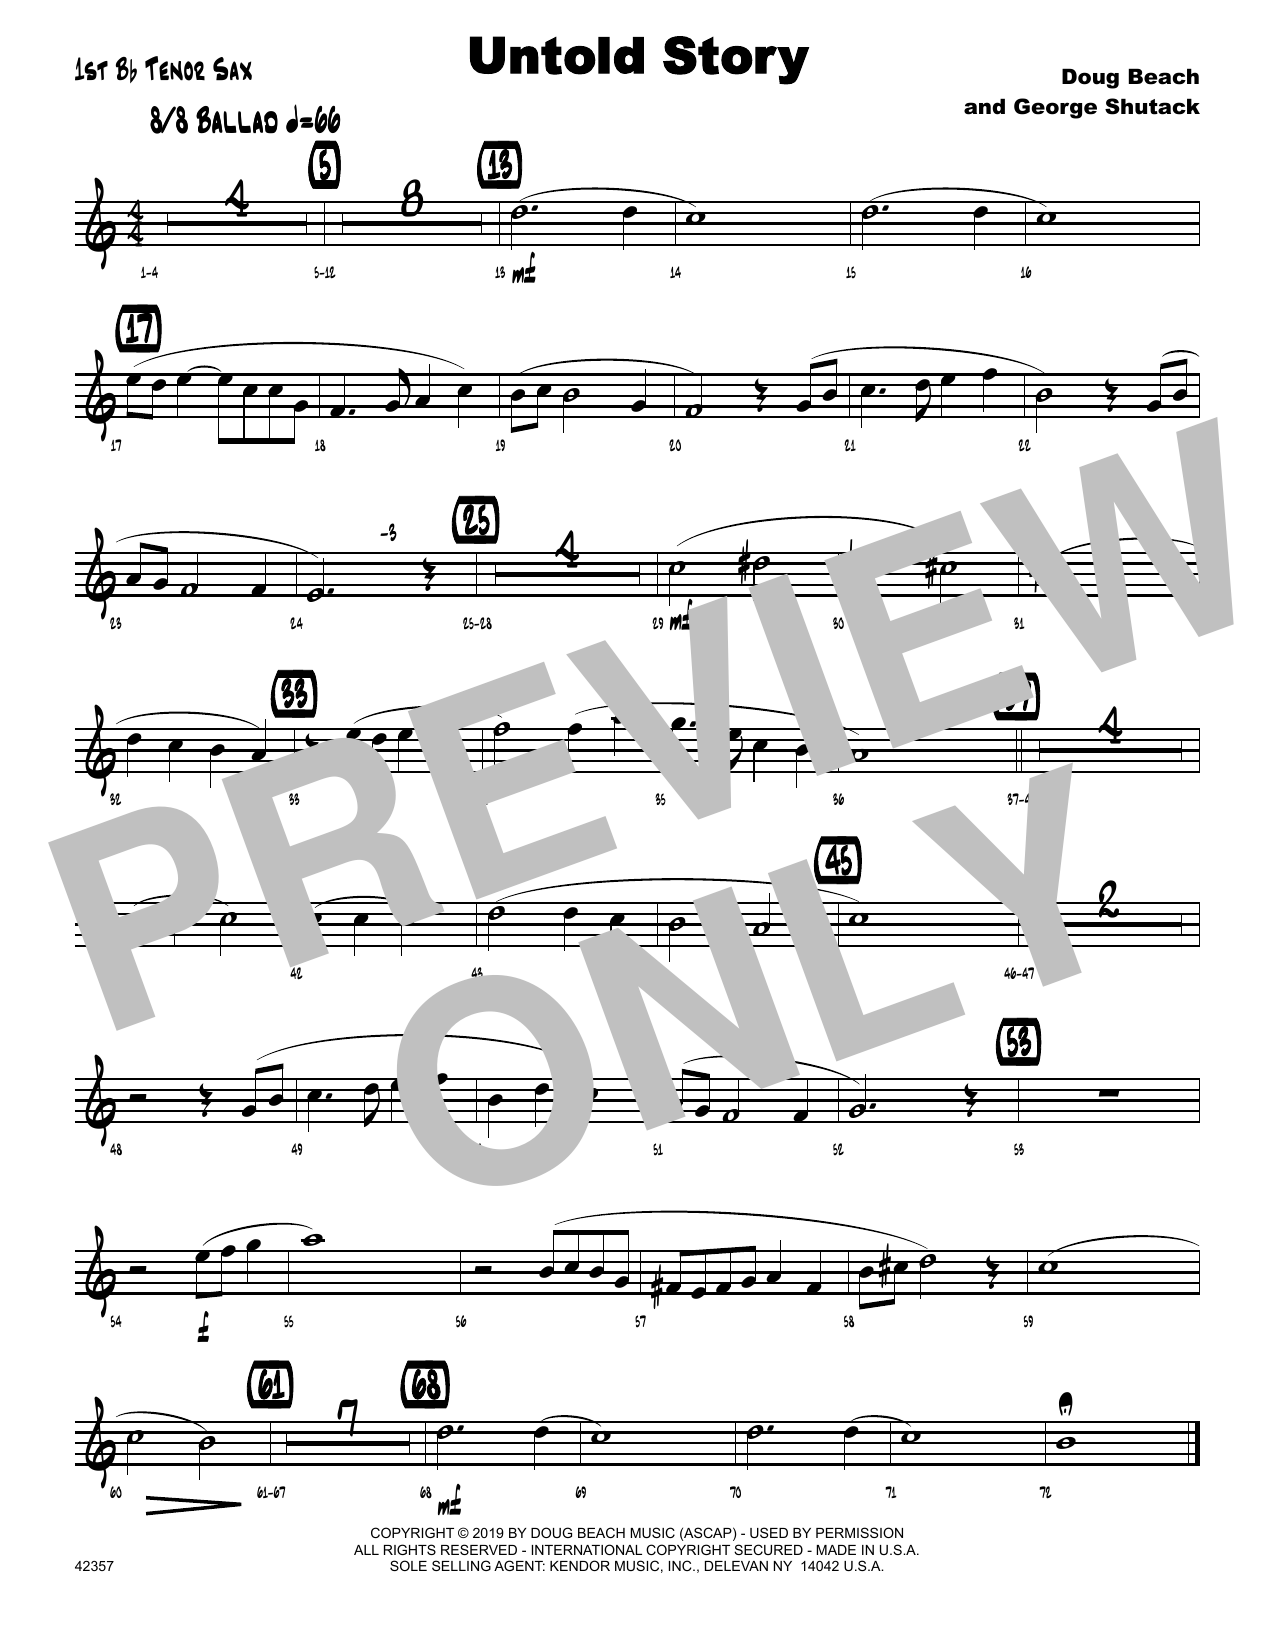 Doug Beach & George Shutack Untold Story - 1st Tenor Saxophone sheet music notes and chords. Download Printable PDF.